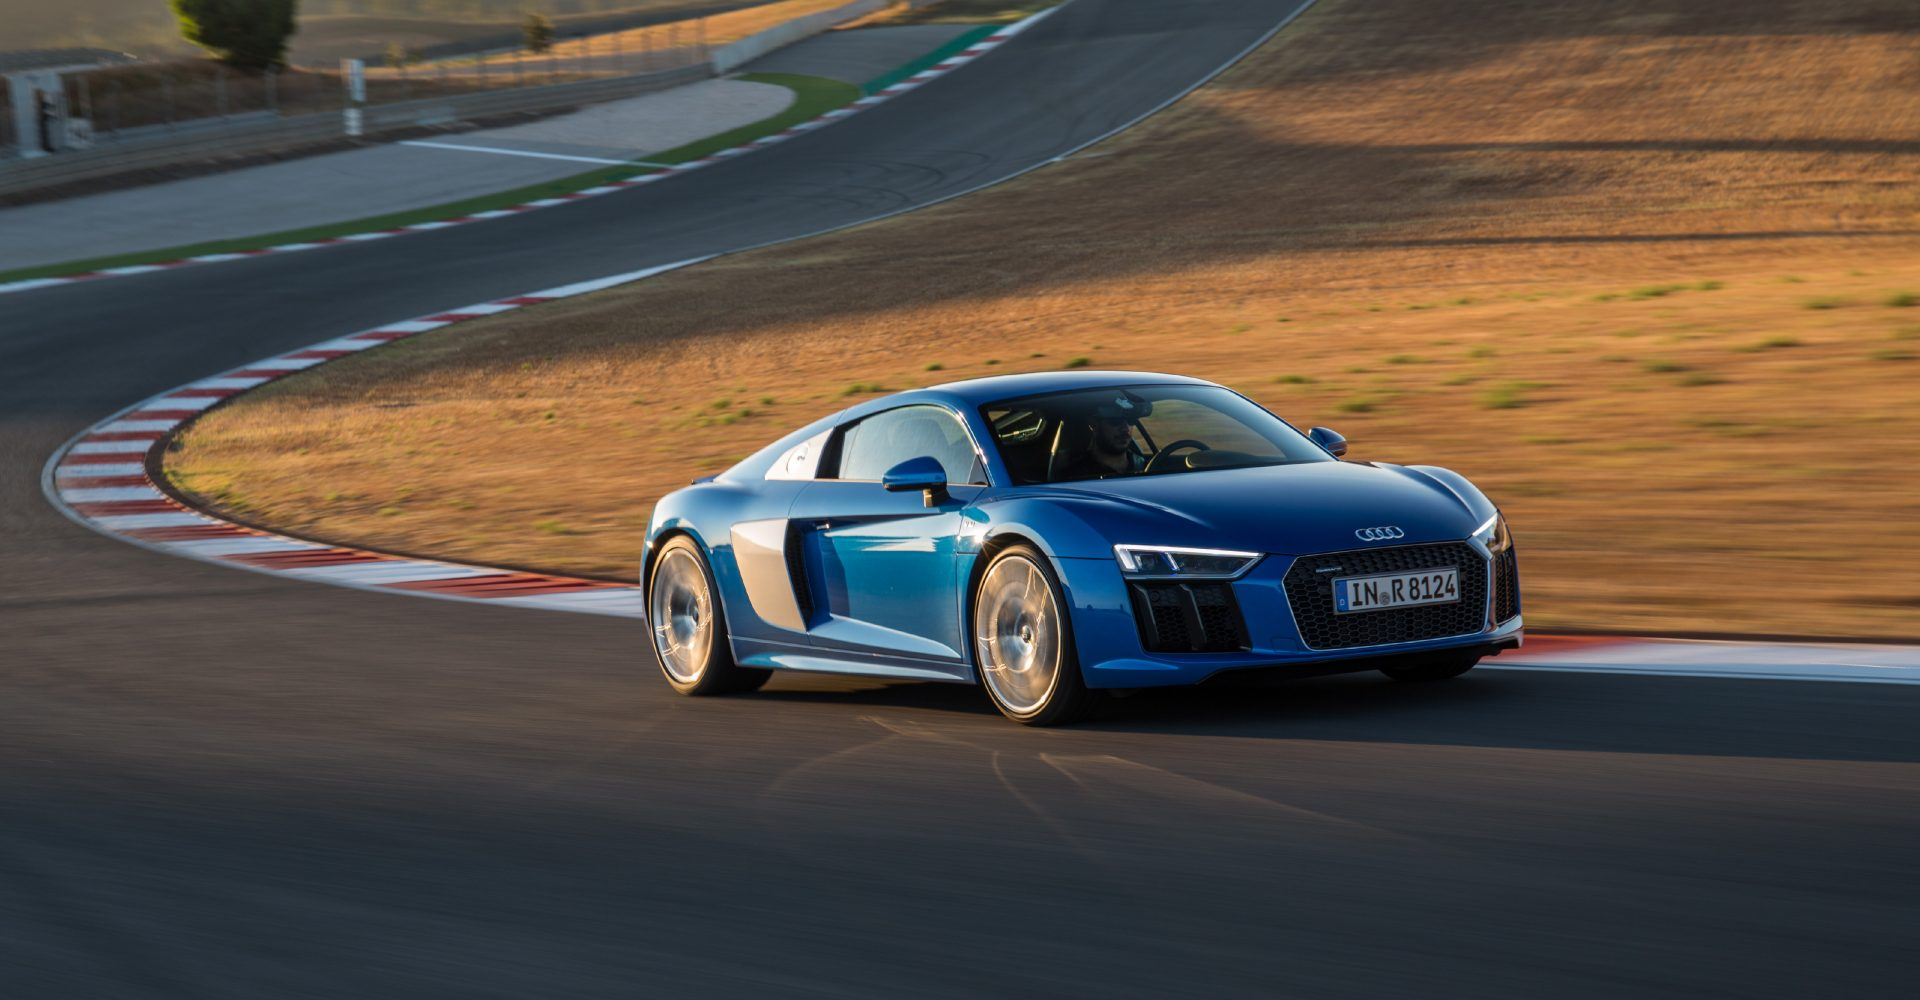 Watch As A 2,200bhp Audi R8 Tries To Hit 220mph